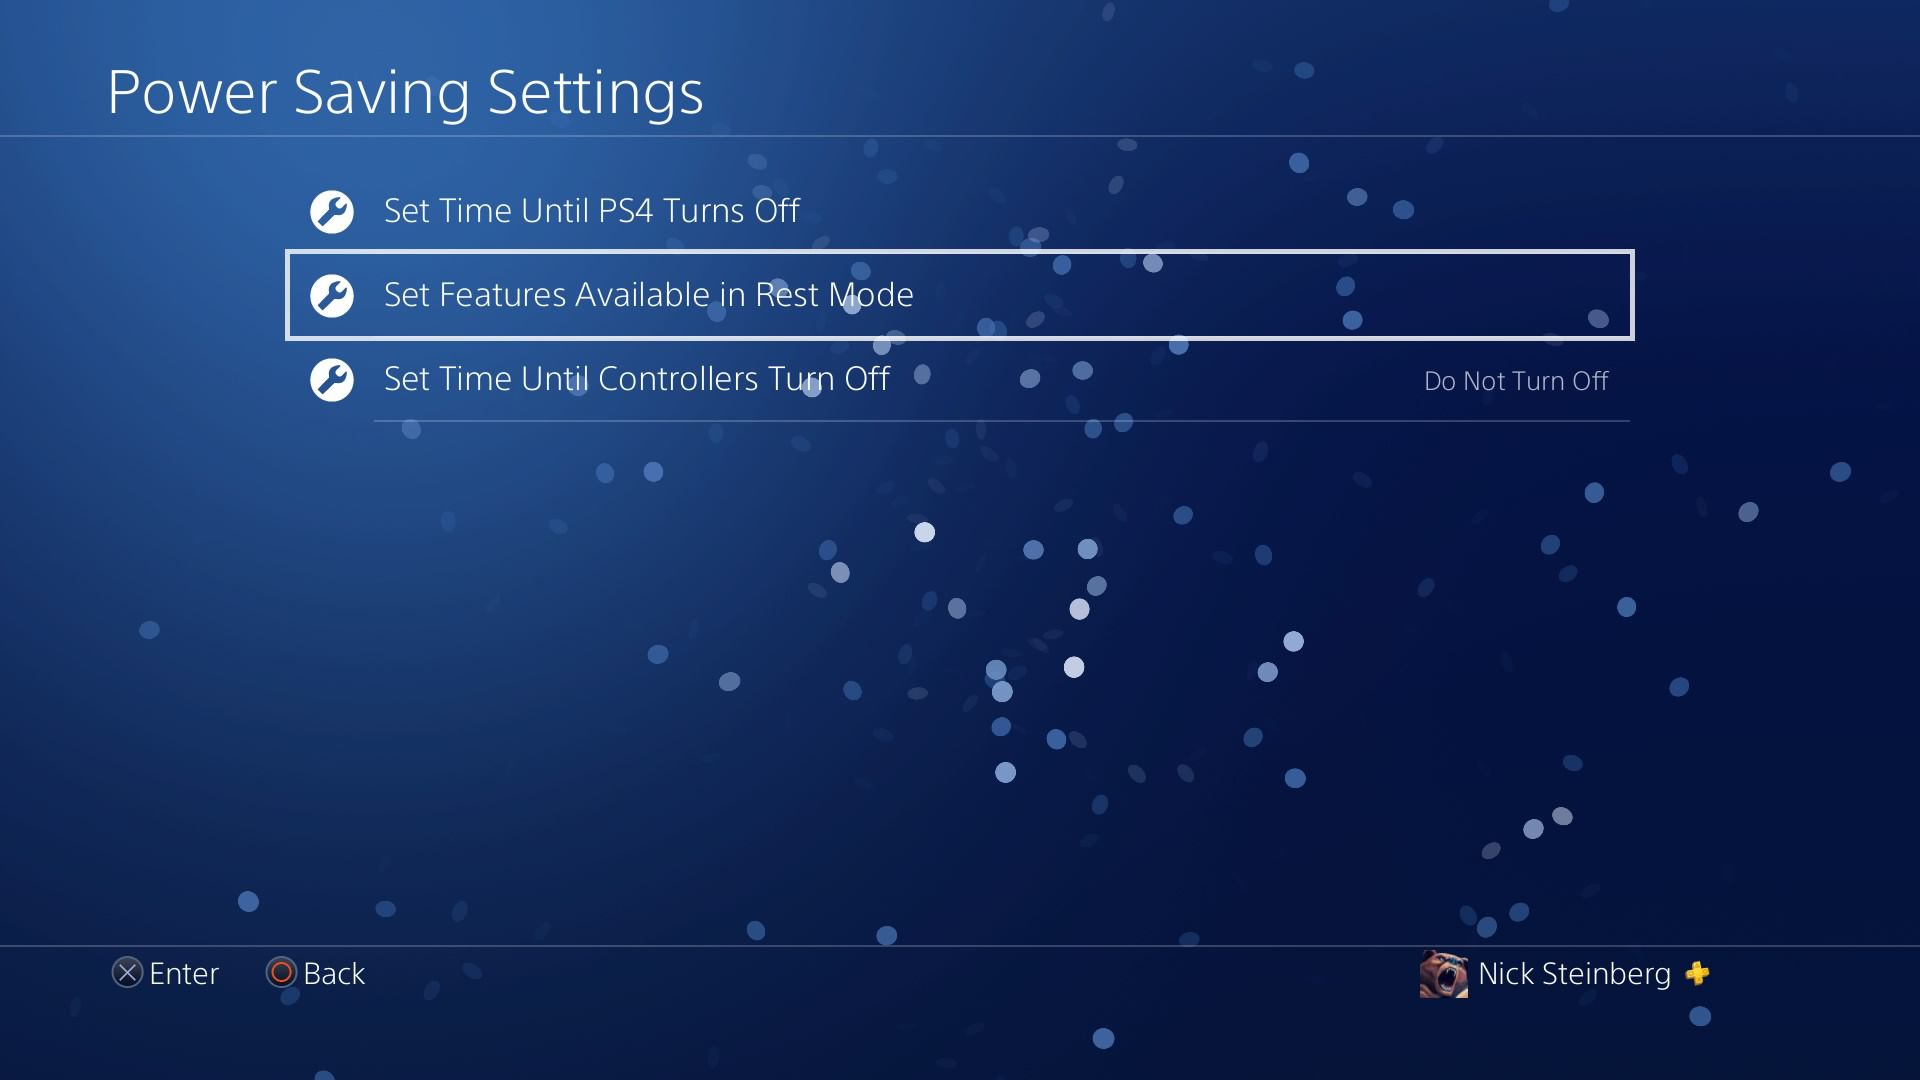 Selecting Set Features Available in Rest Mode under PS4 Power Saving Settings.